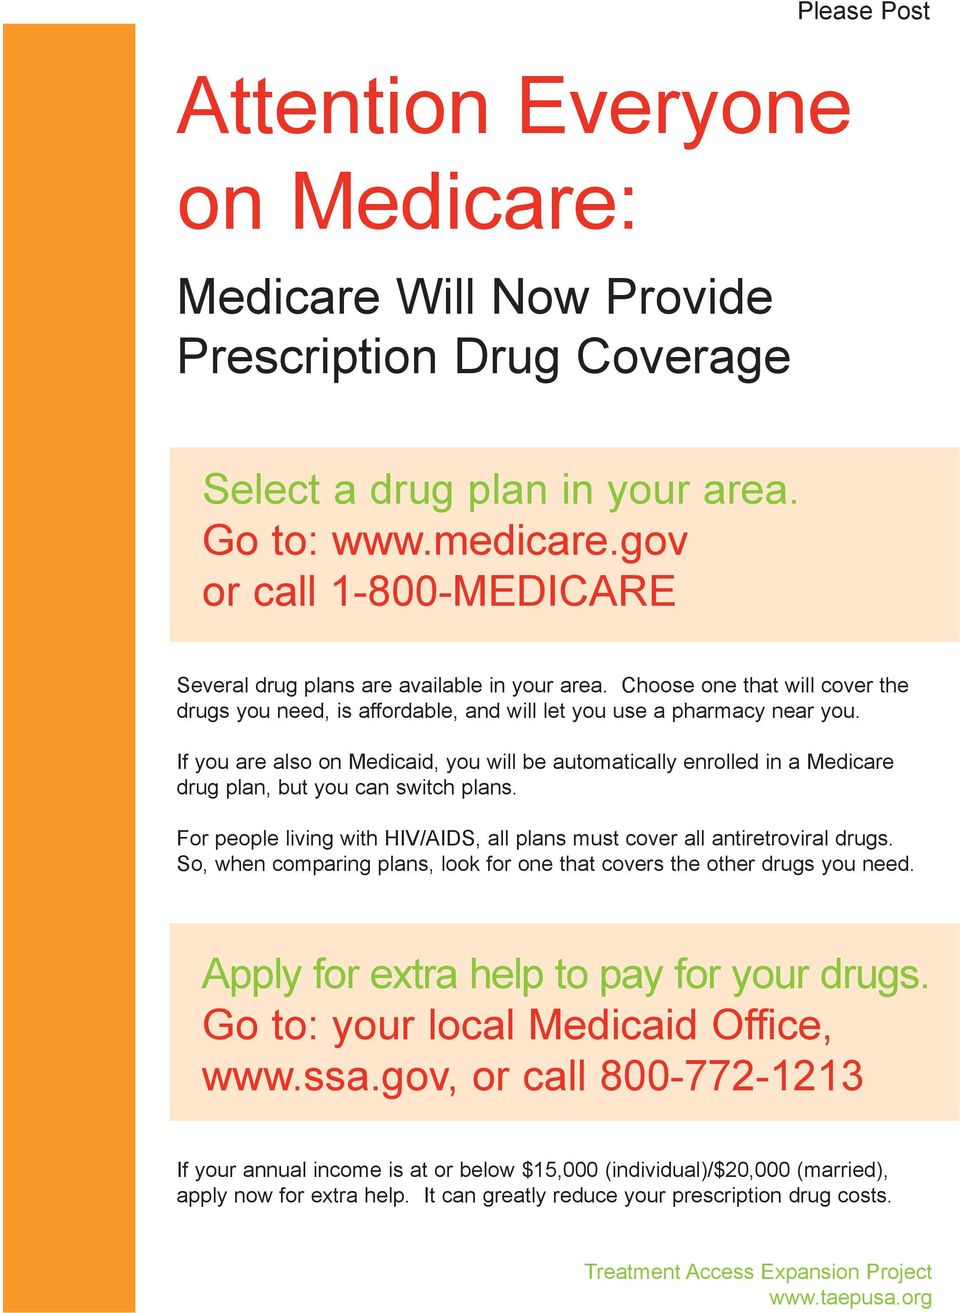 If you are also on Medicaid, you will be automatically enrolled in a Medicare drug plan, but you can switch plans. For people living with HIV/AIDS, all plans must cover all antiretroviral drugs.